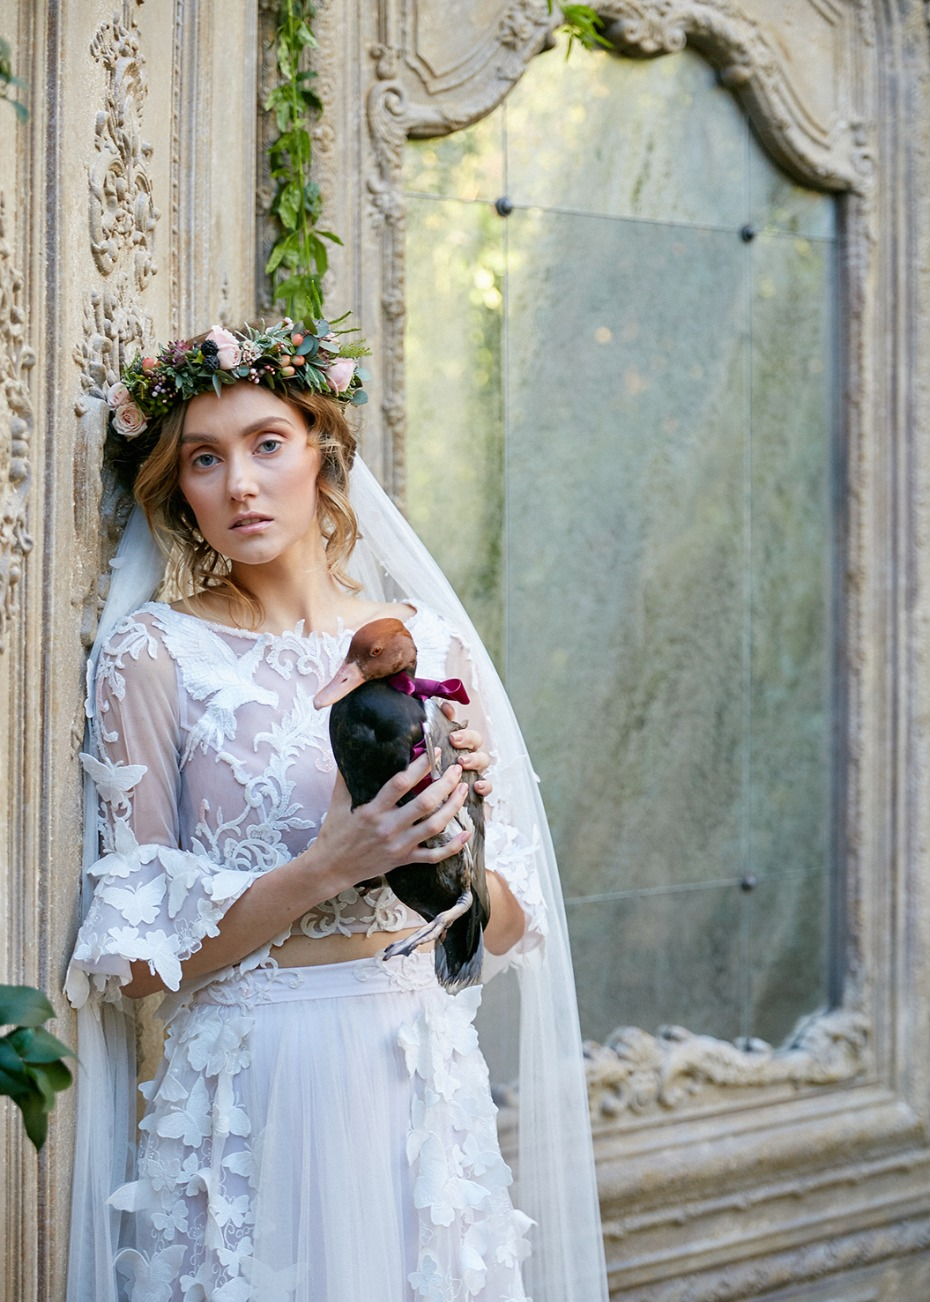 A bride and her duck